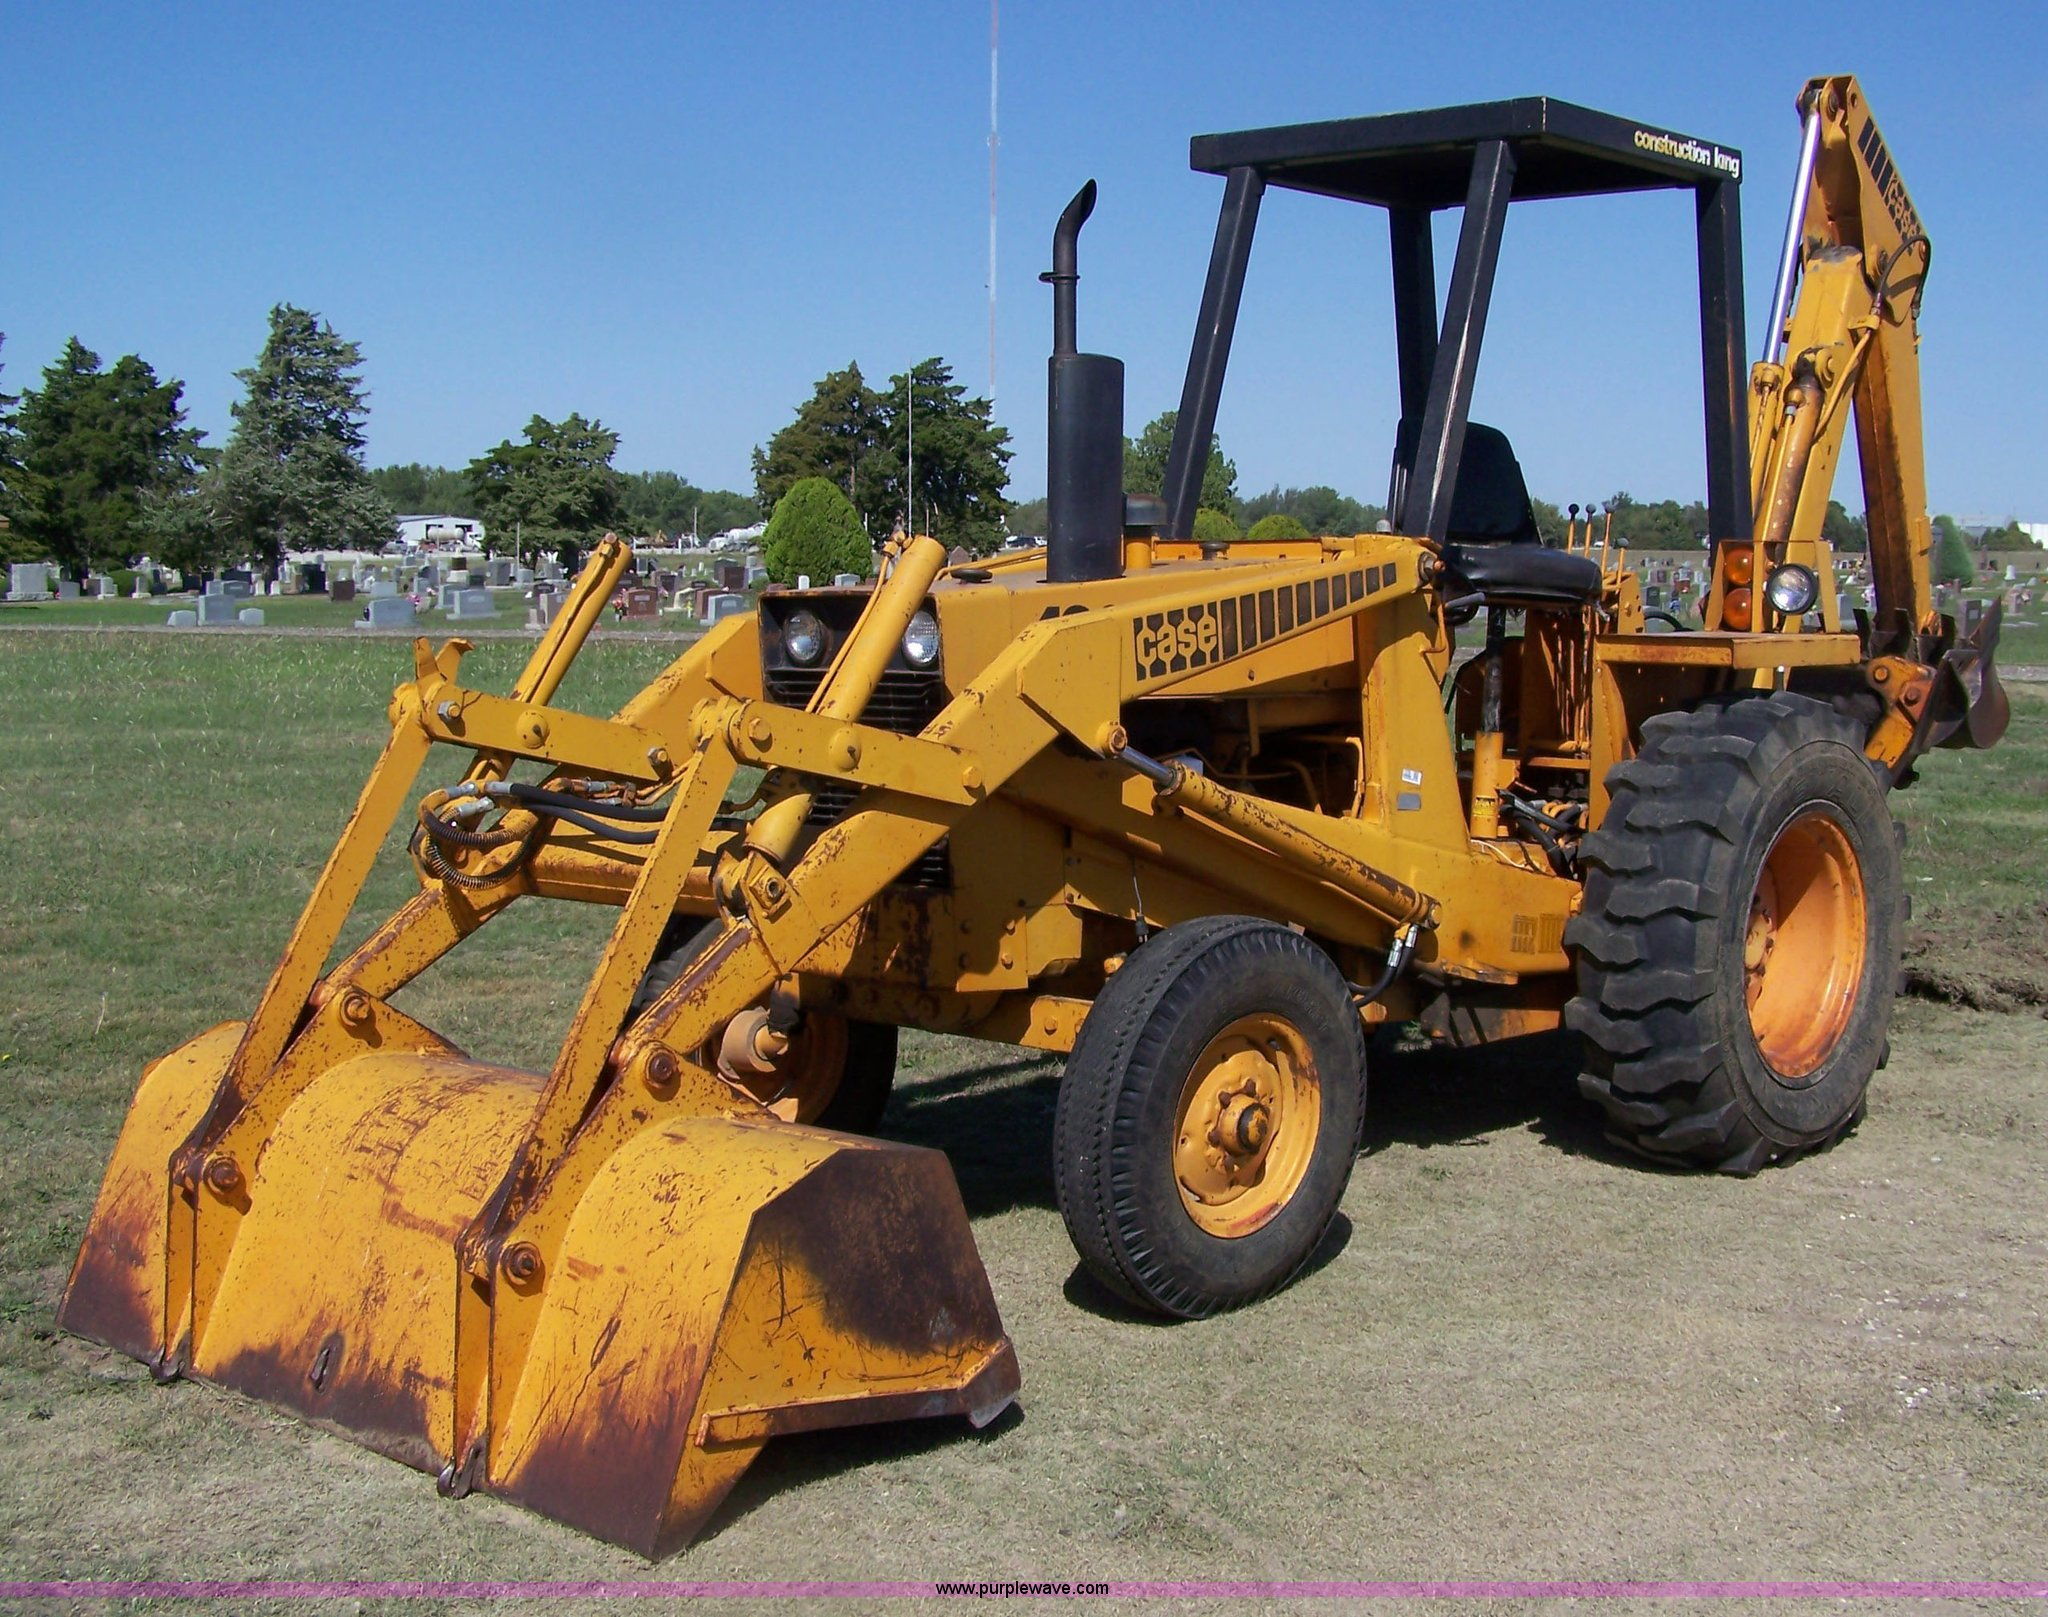 Wiring Diagram For A 480b Case Backhoe - Wiring Diagram List on